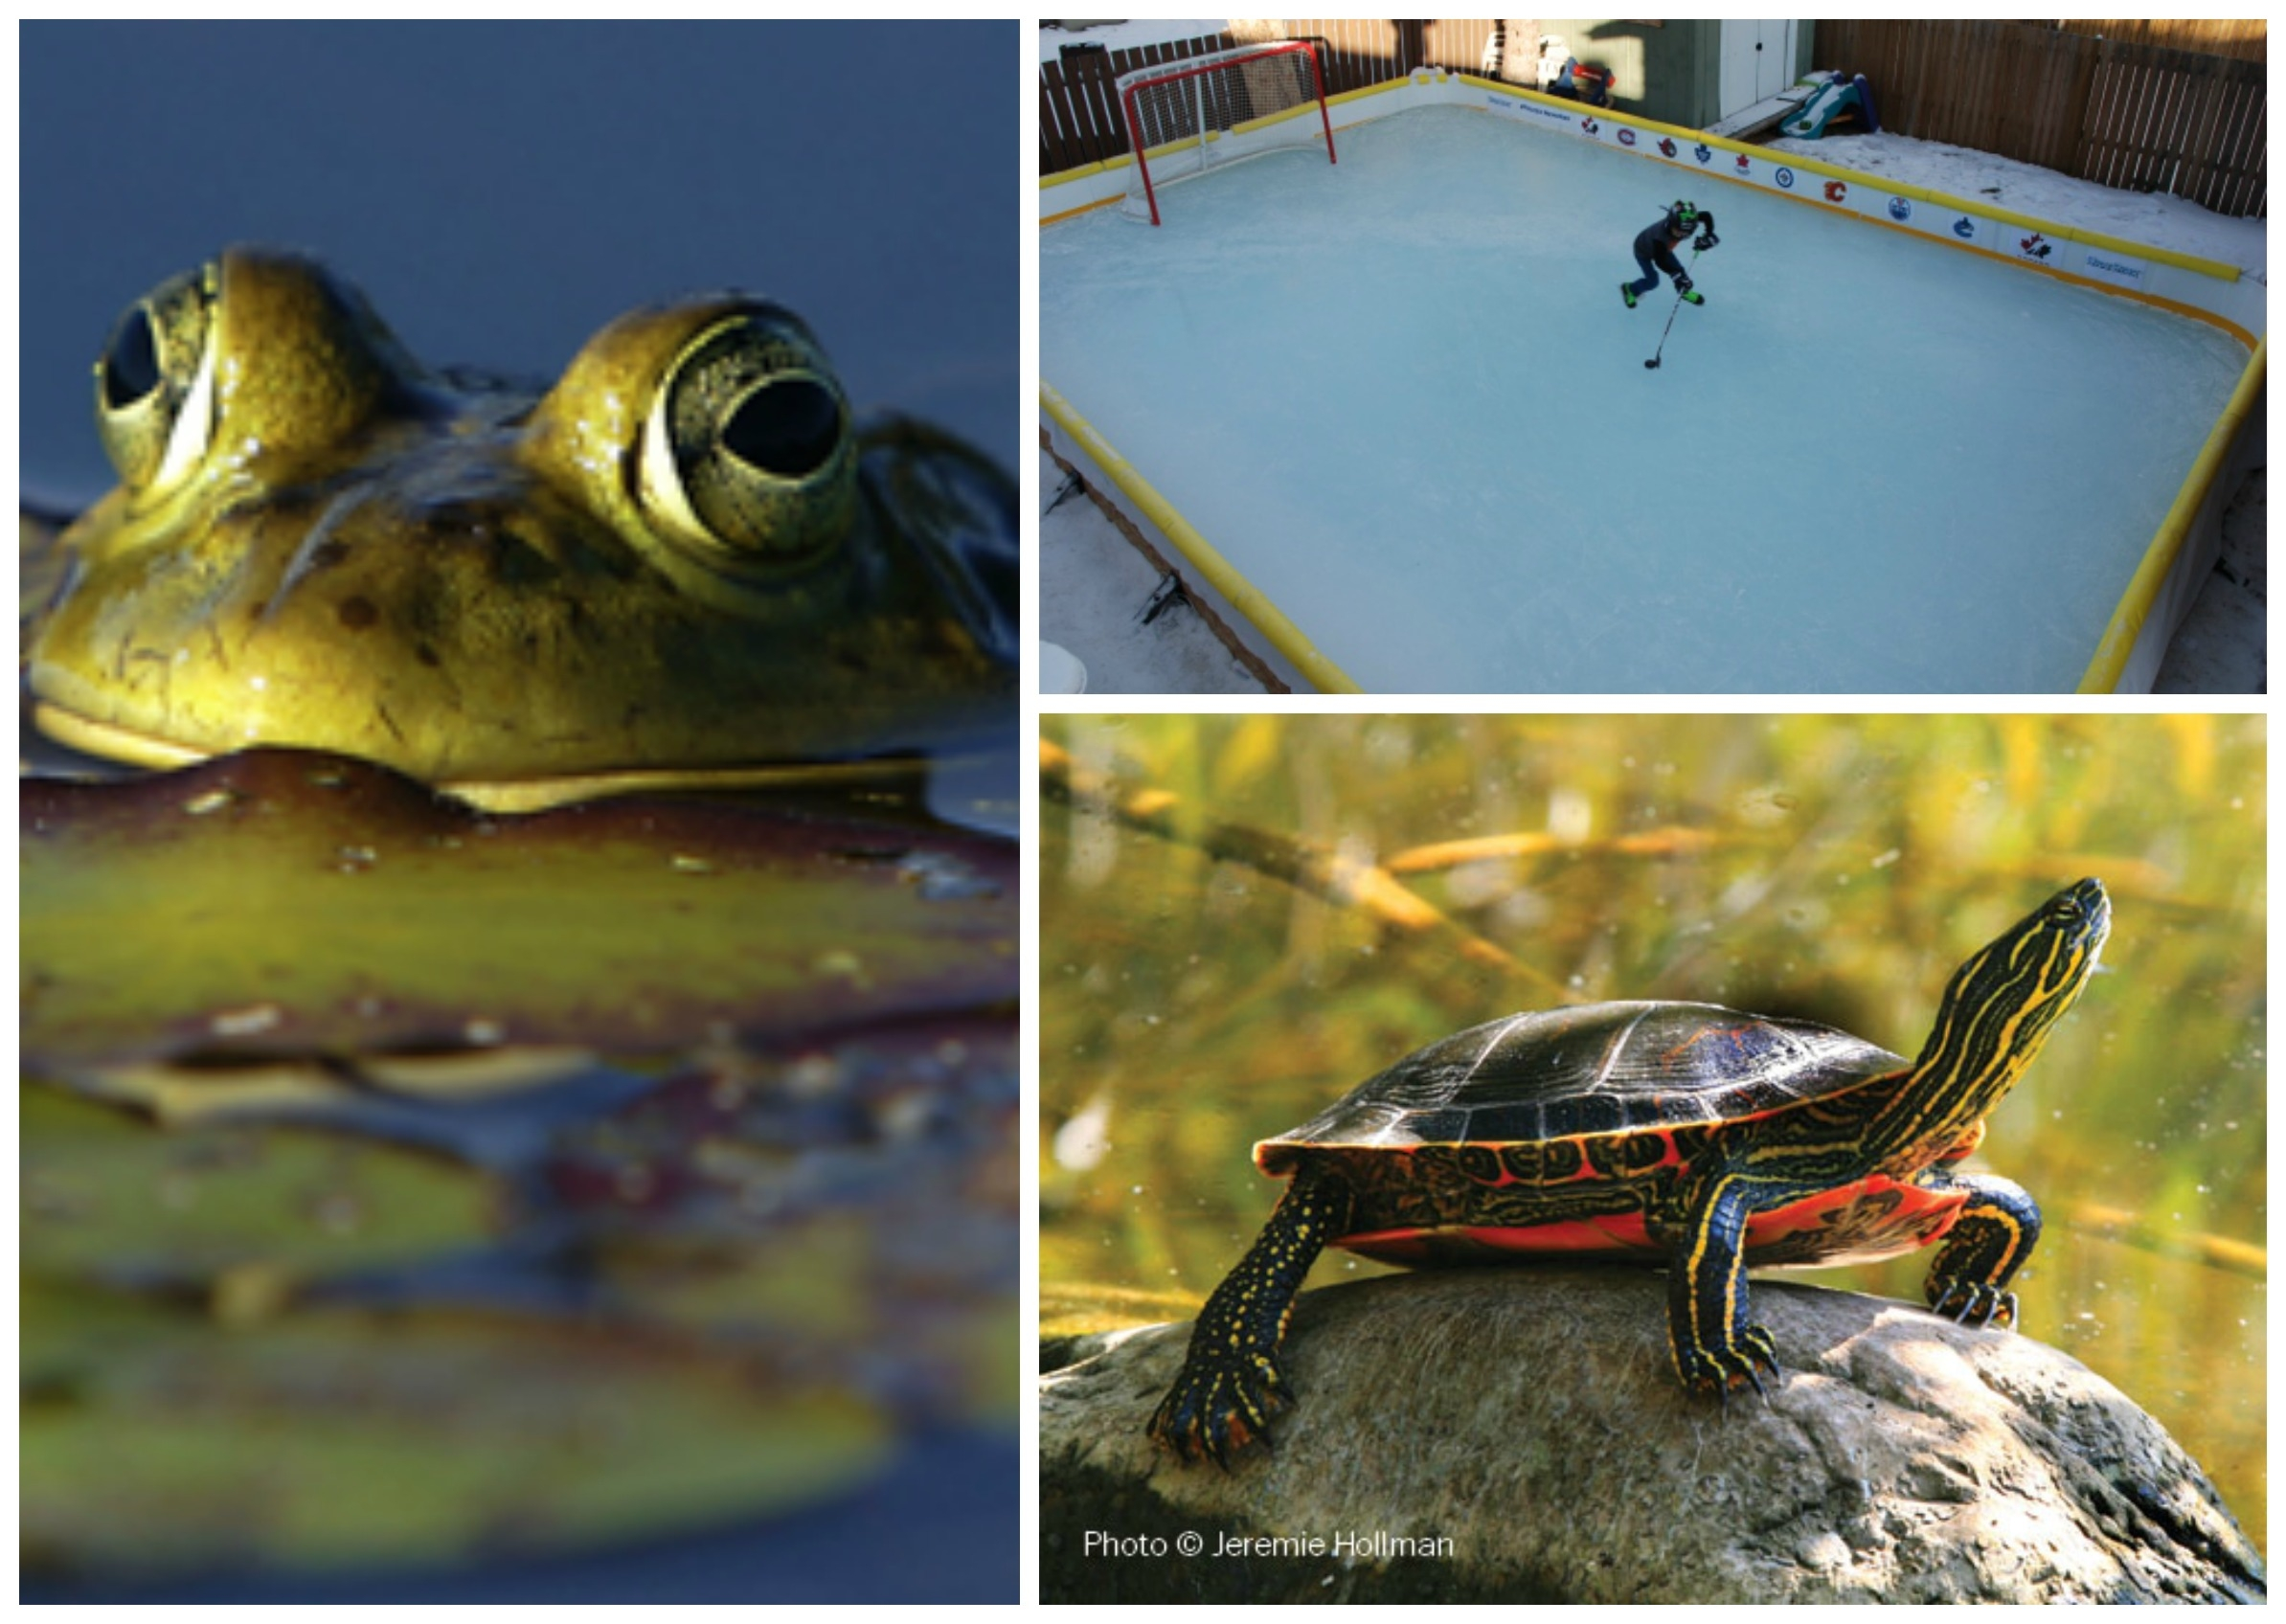 Backyard Rinks, Turtles and Frogs at risk